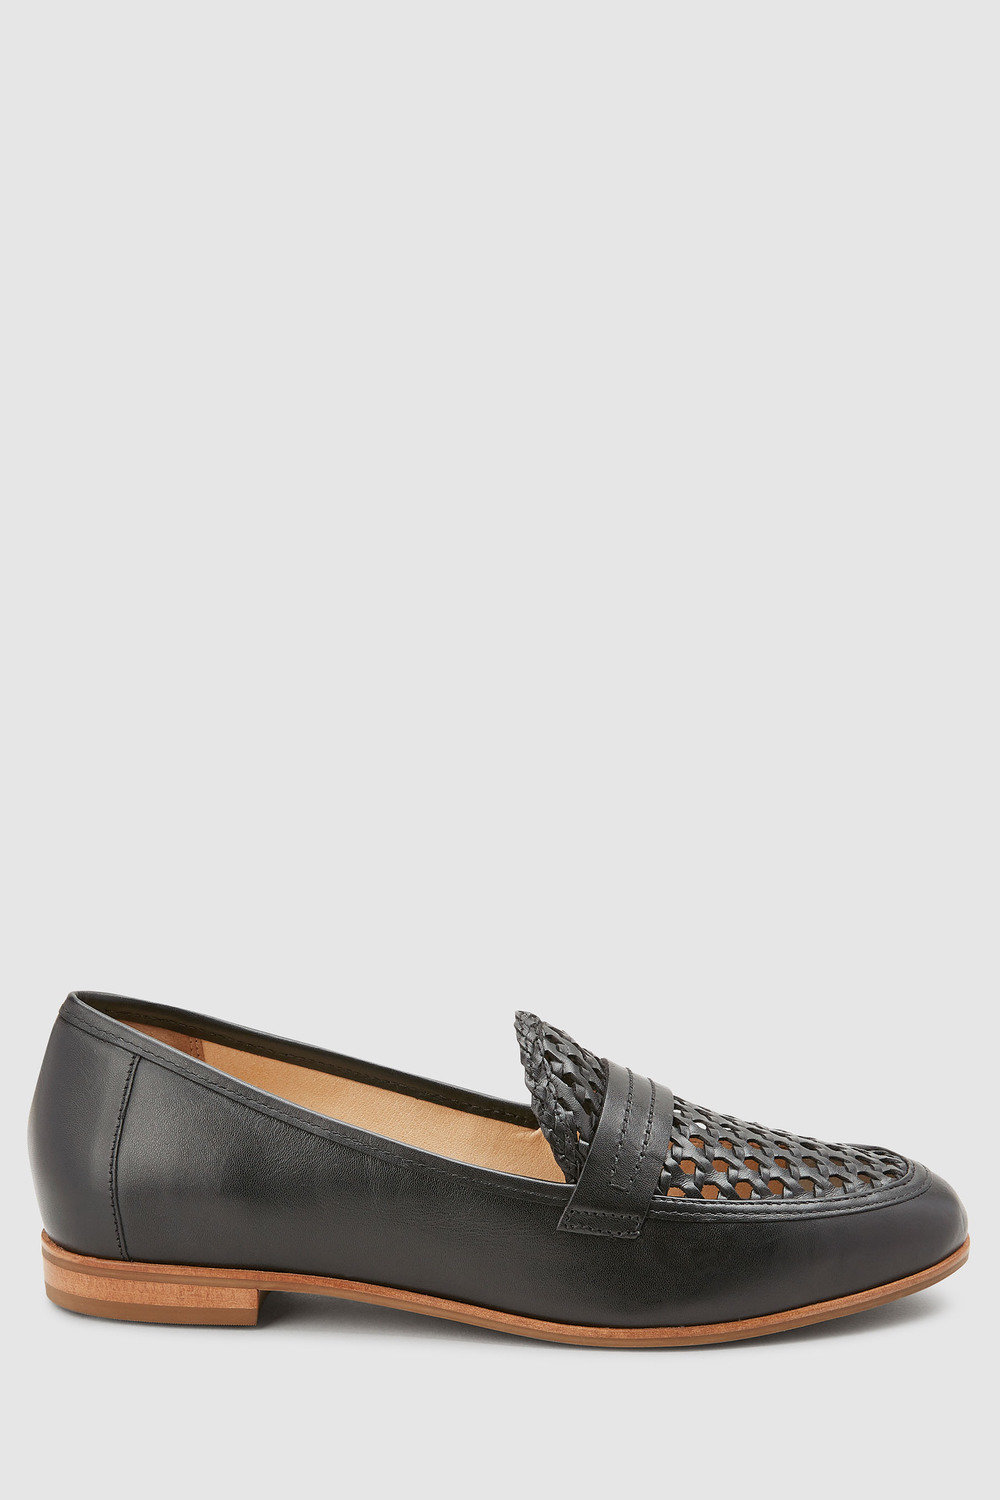 cde7161a5a6 Next Signature Forever Comfort Leather Woven Loafers Online